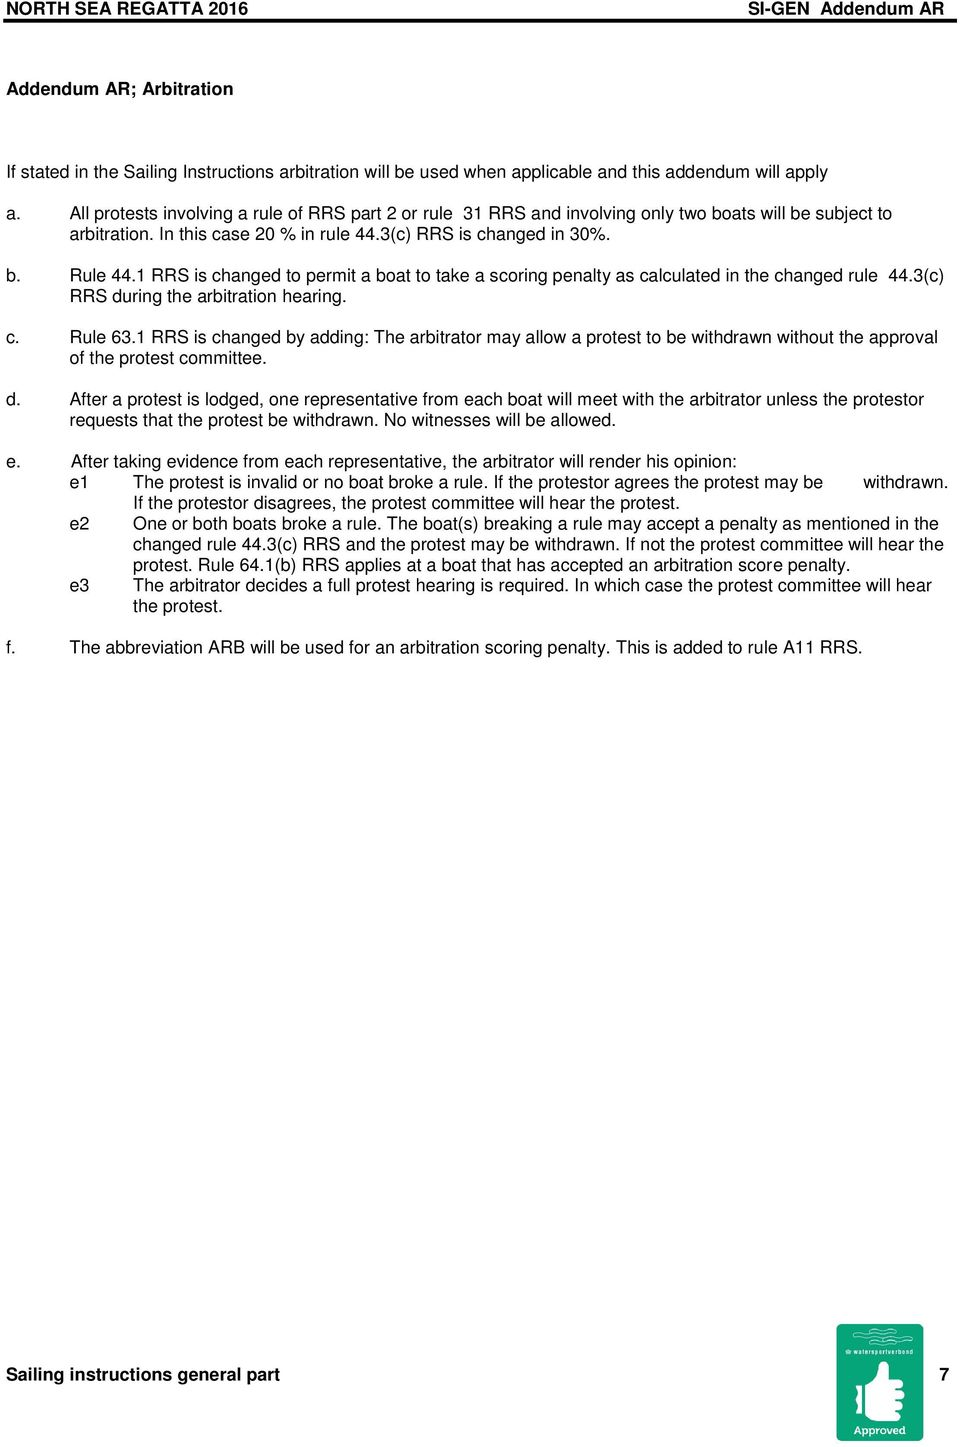 1 RRS is changed to permit a boat to take a scoring penalty as calculated in the changed rule 44.3(c) RRS during the arbitration hearing. c. Rule 63.